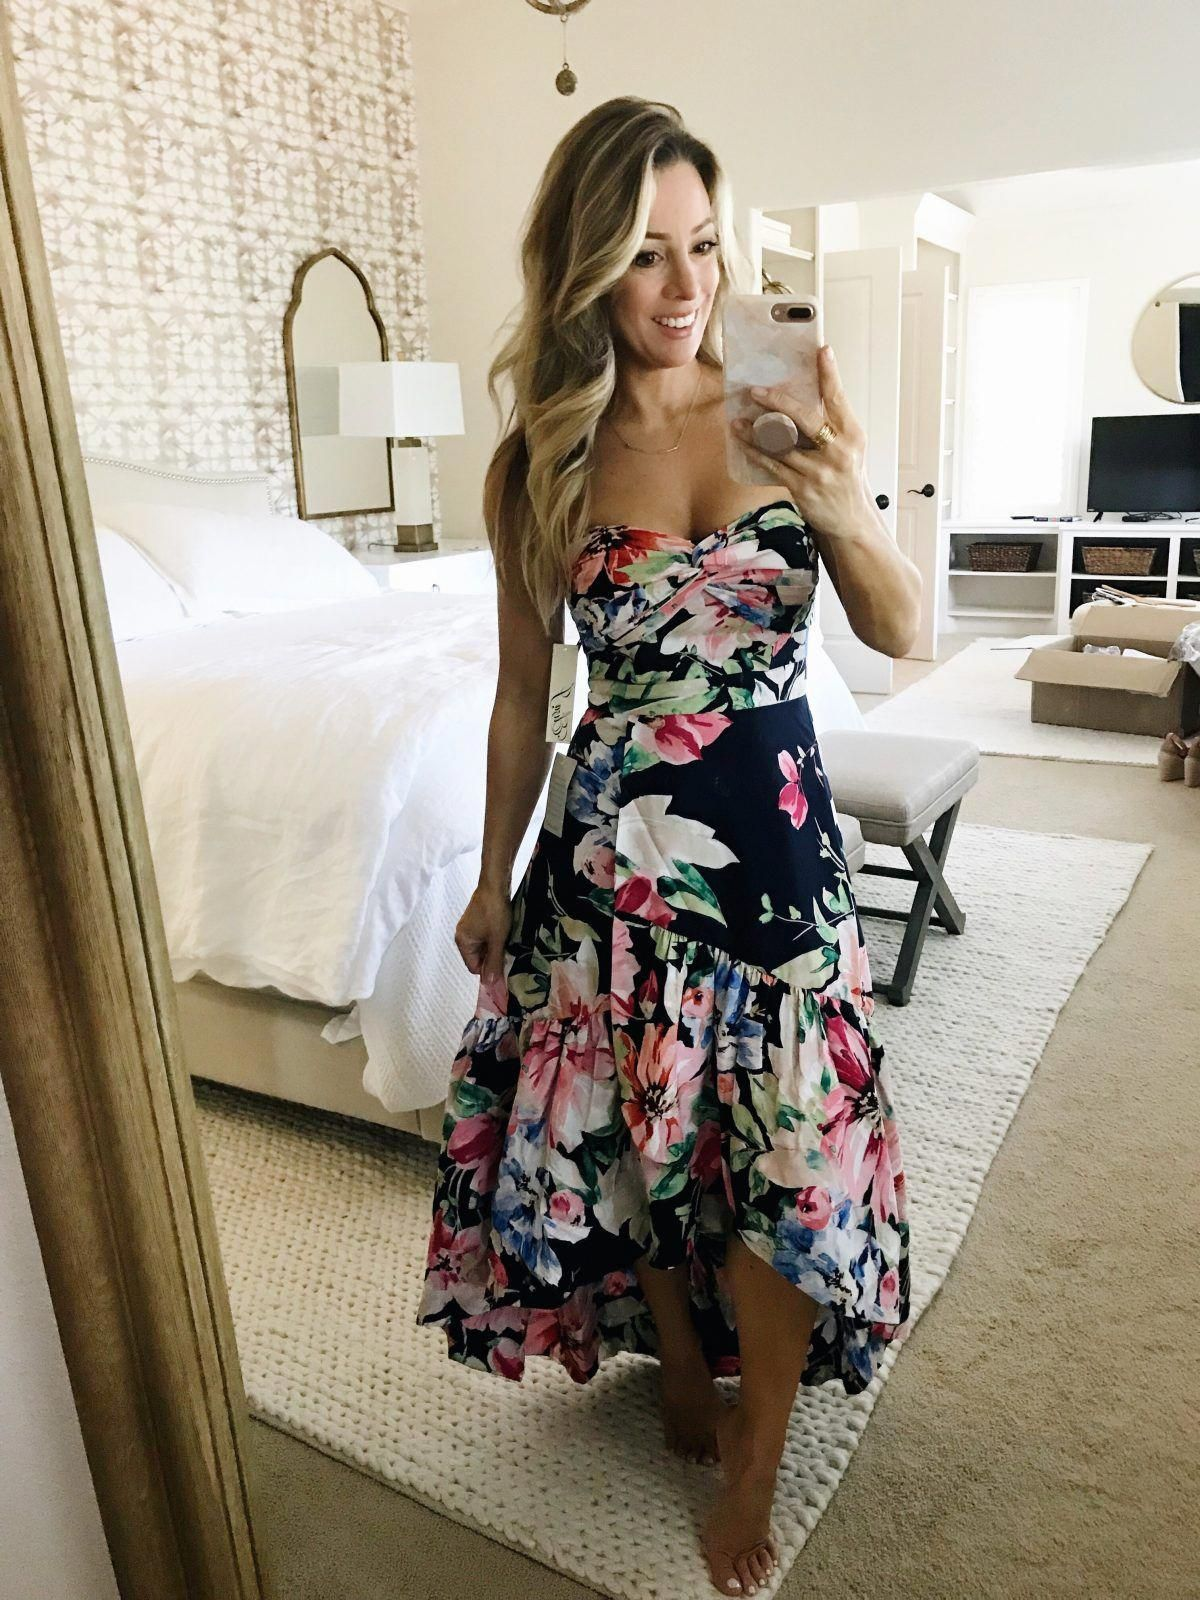 Spring dress for a party, Havana nights gala or wedding